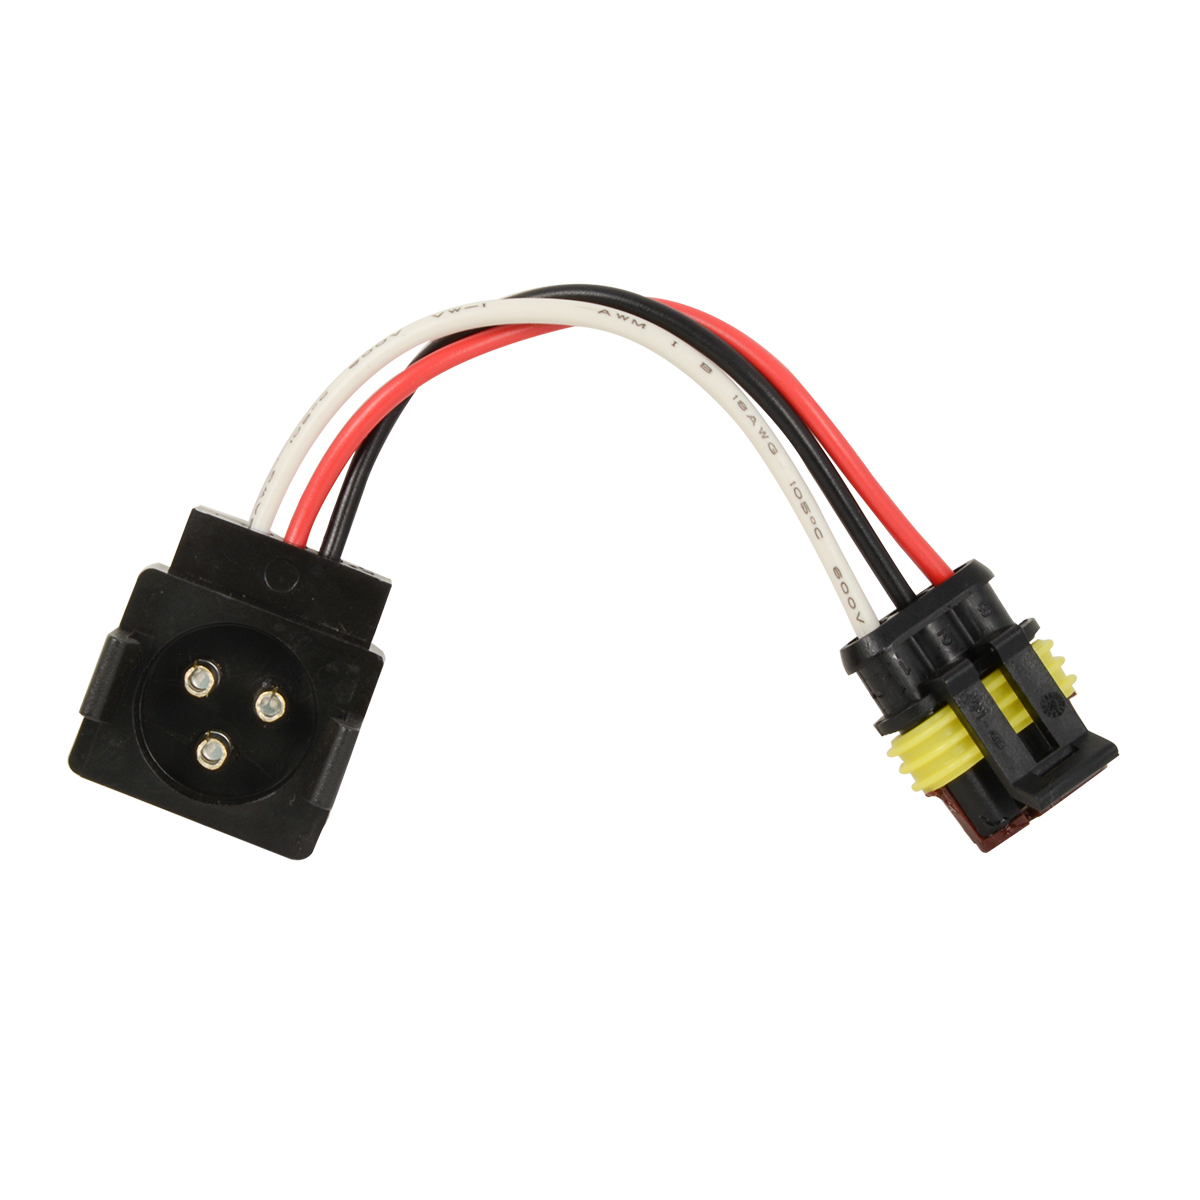 88095 3-Pin Light Adapter Plug from Round 3-Pin to Straight 3-Pin